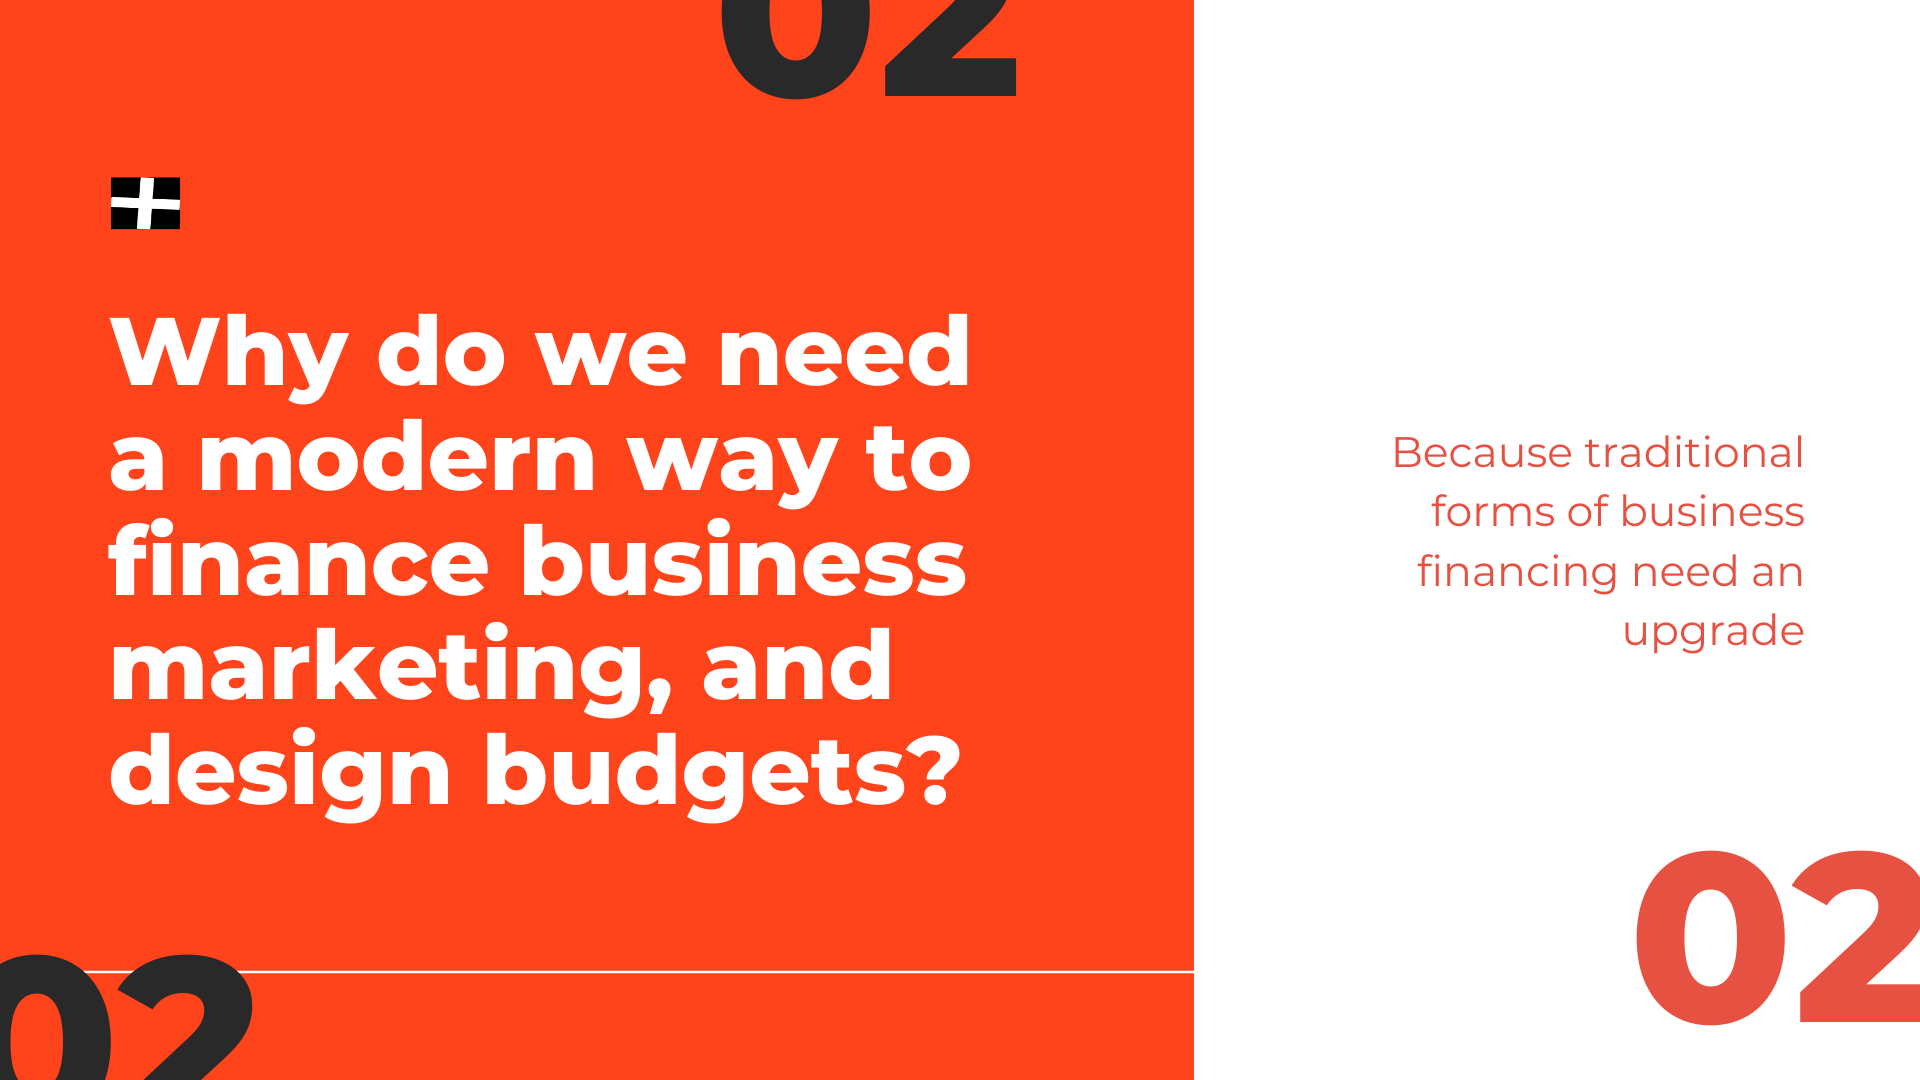 Why do we need a modern way to finance business marketing, and design budgets? Because traditional forms of business financing need an upgrade